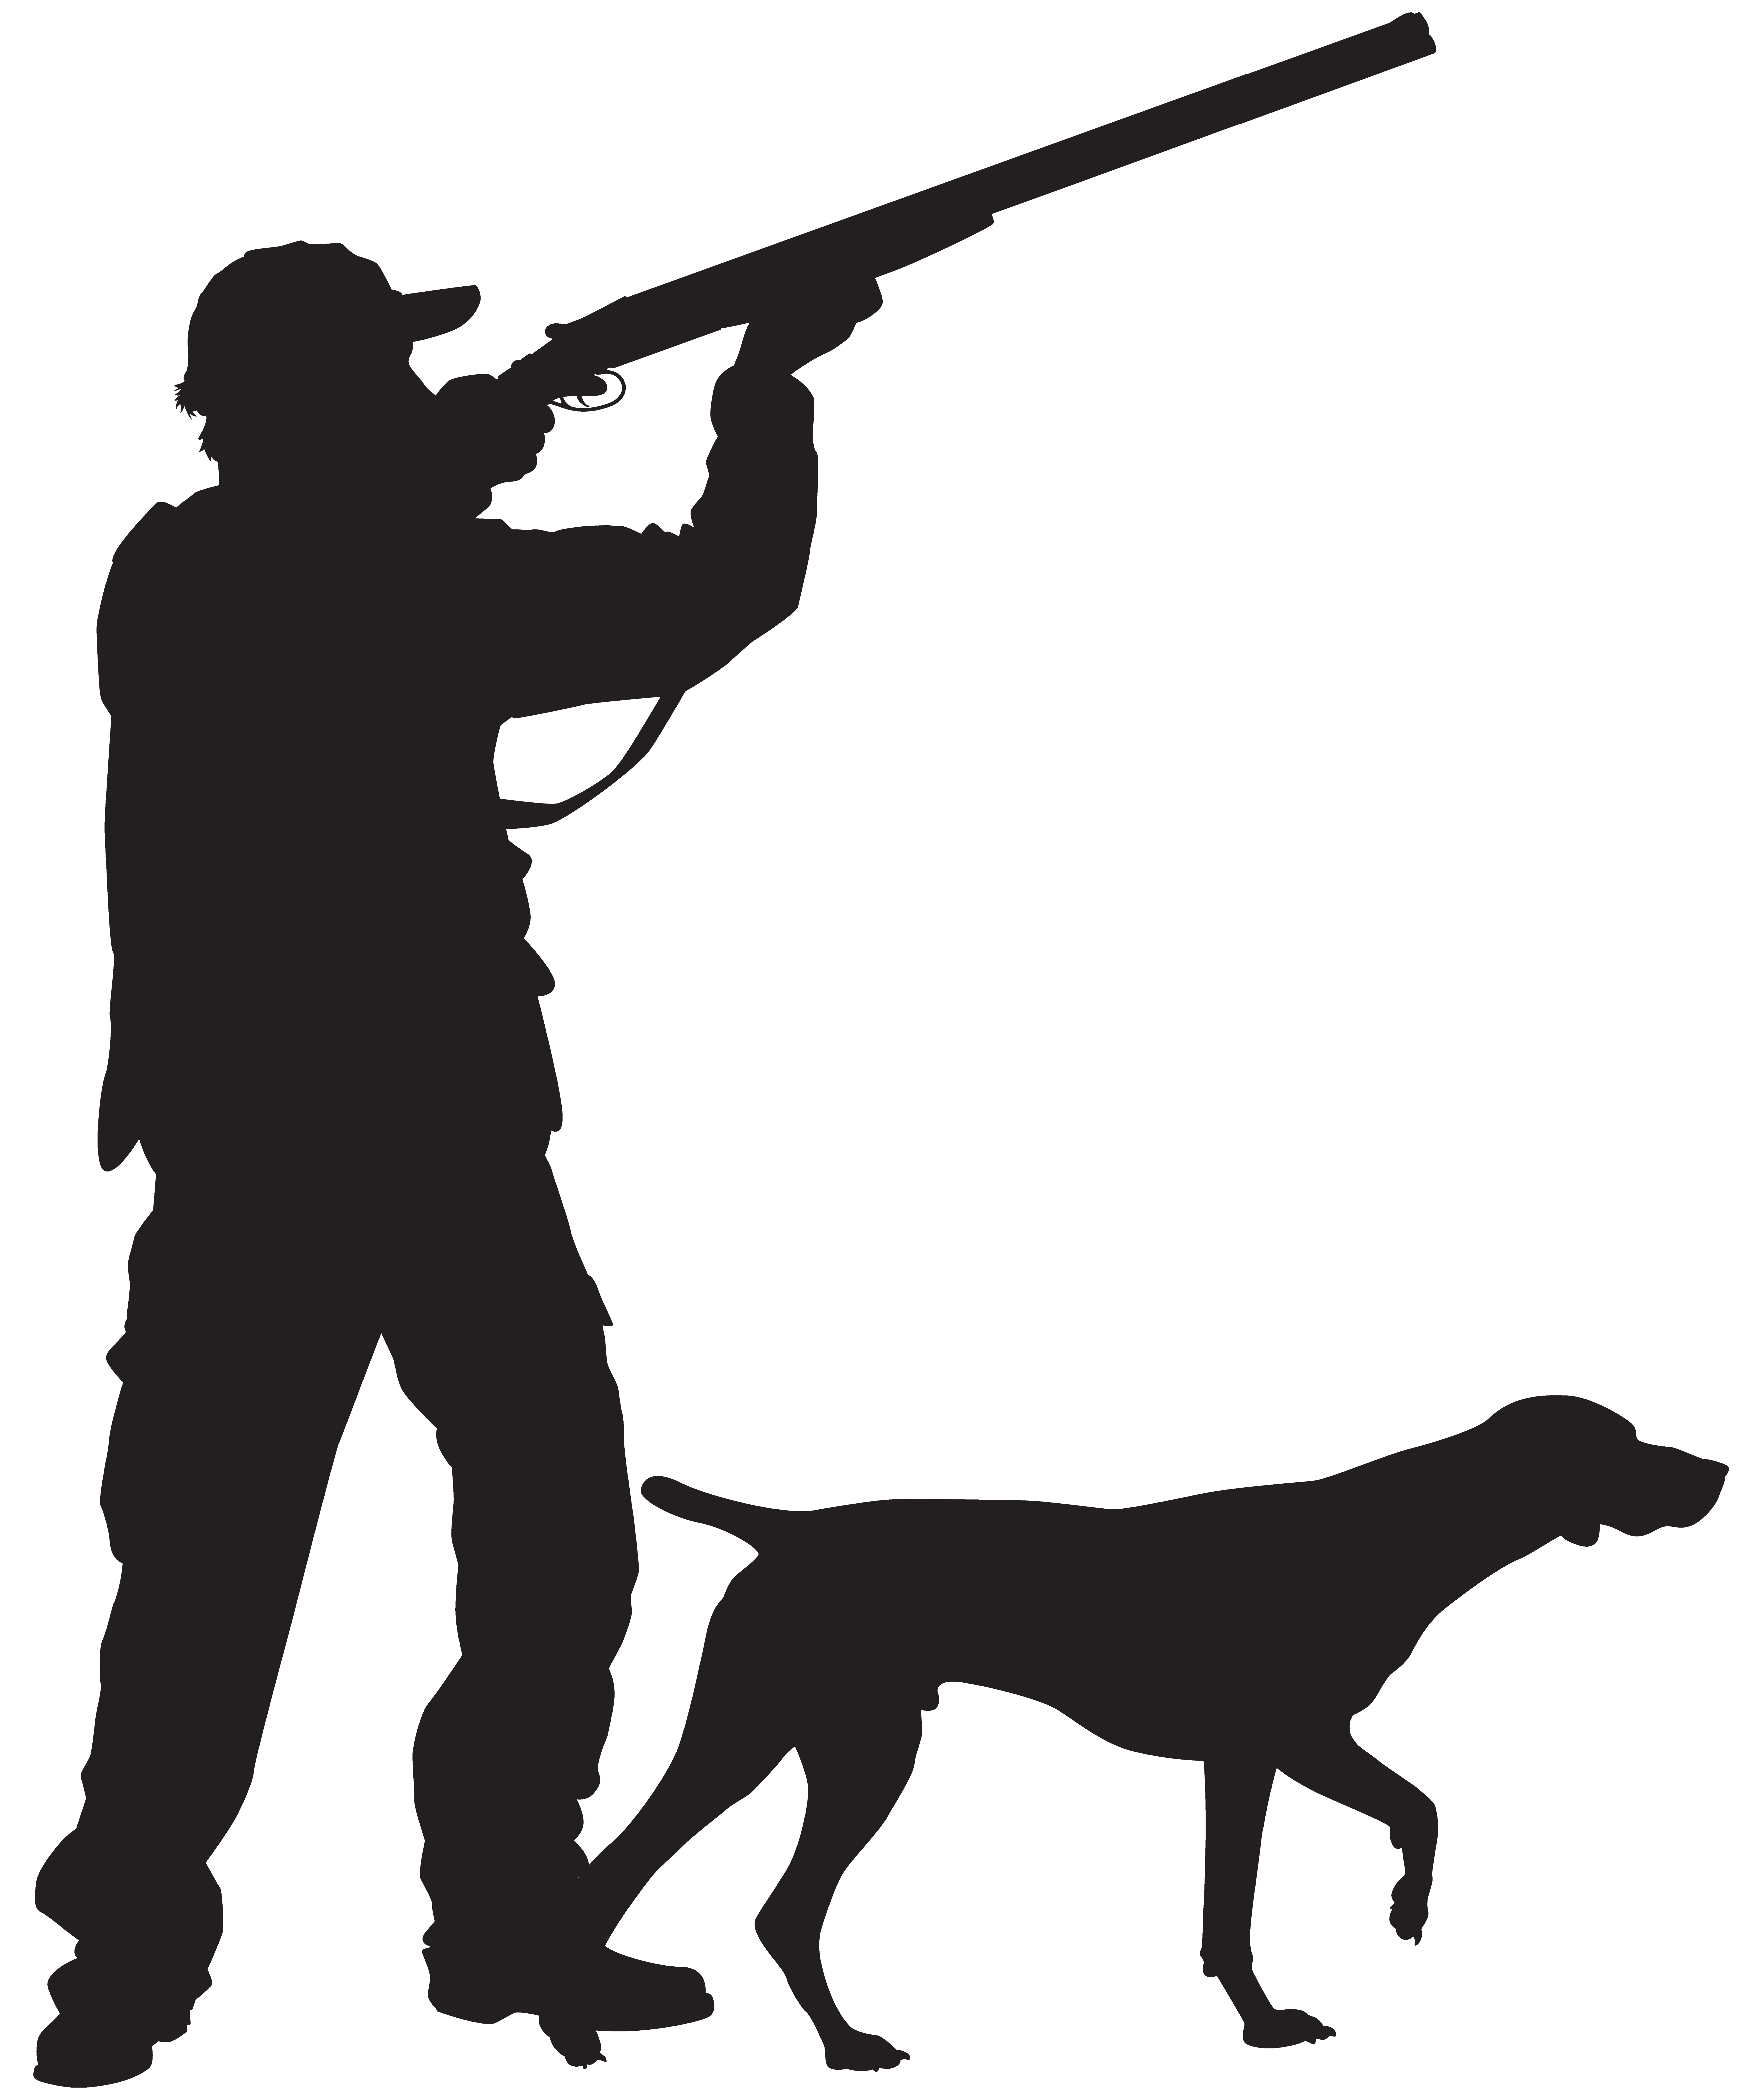 jpg With dog silhouette png. Hunter clipart.